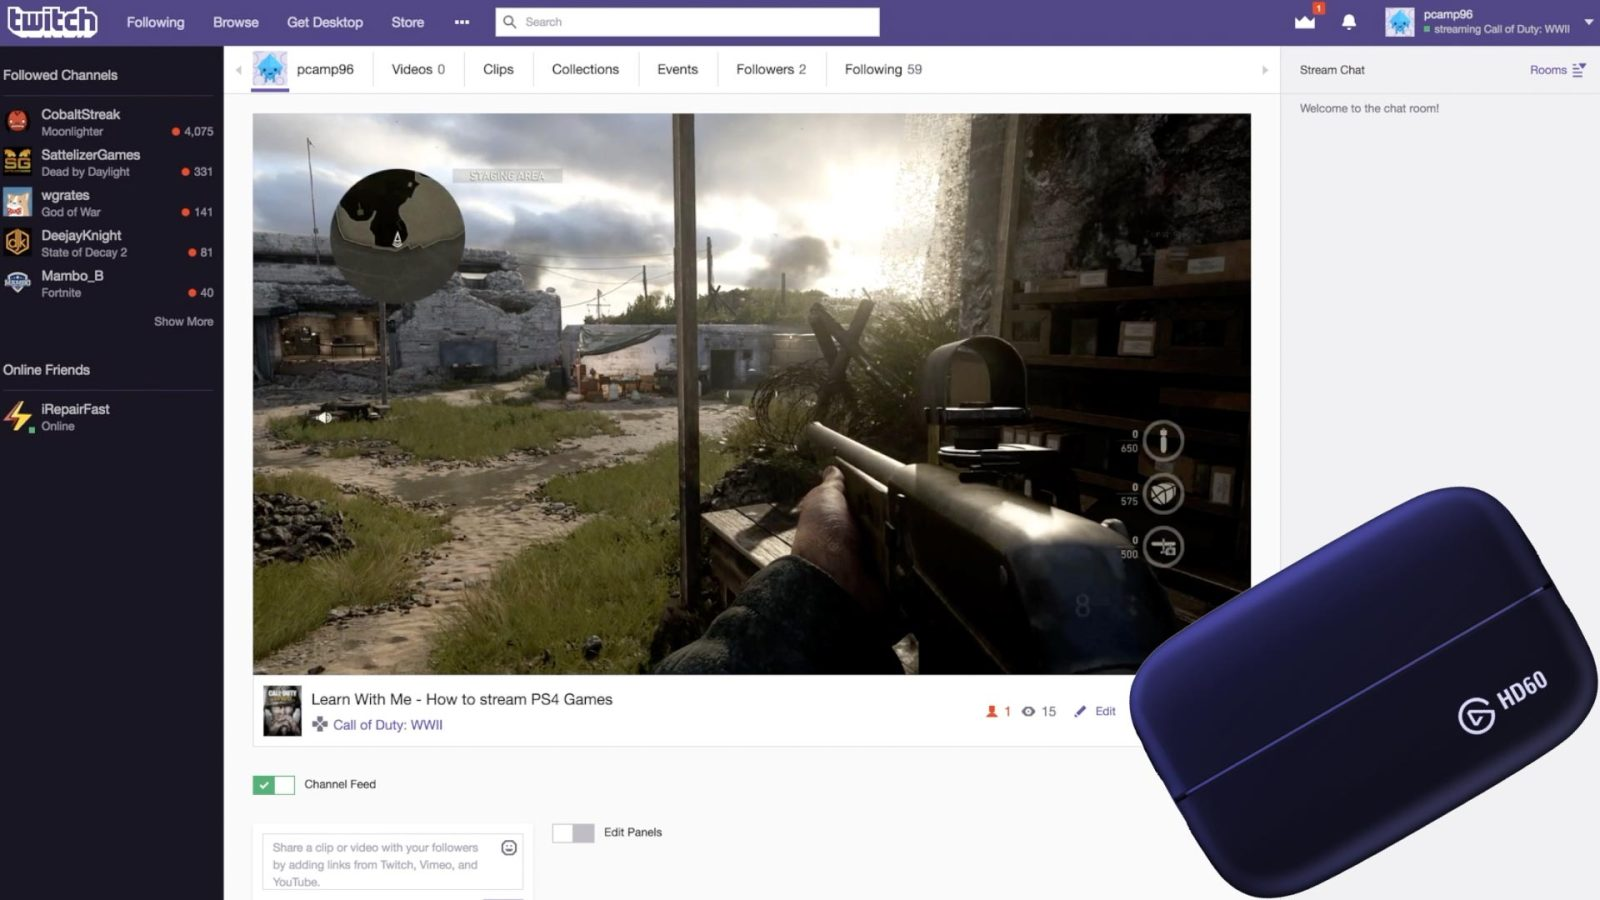 Learn with Me: How to stream PS4 games with Elgato software and